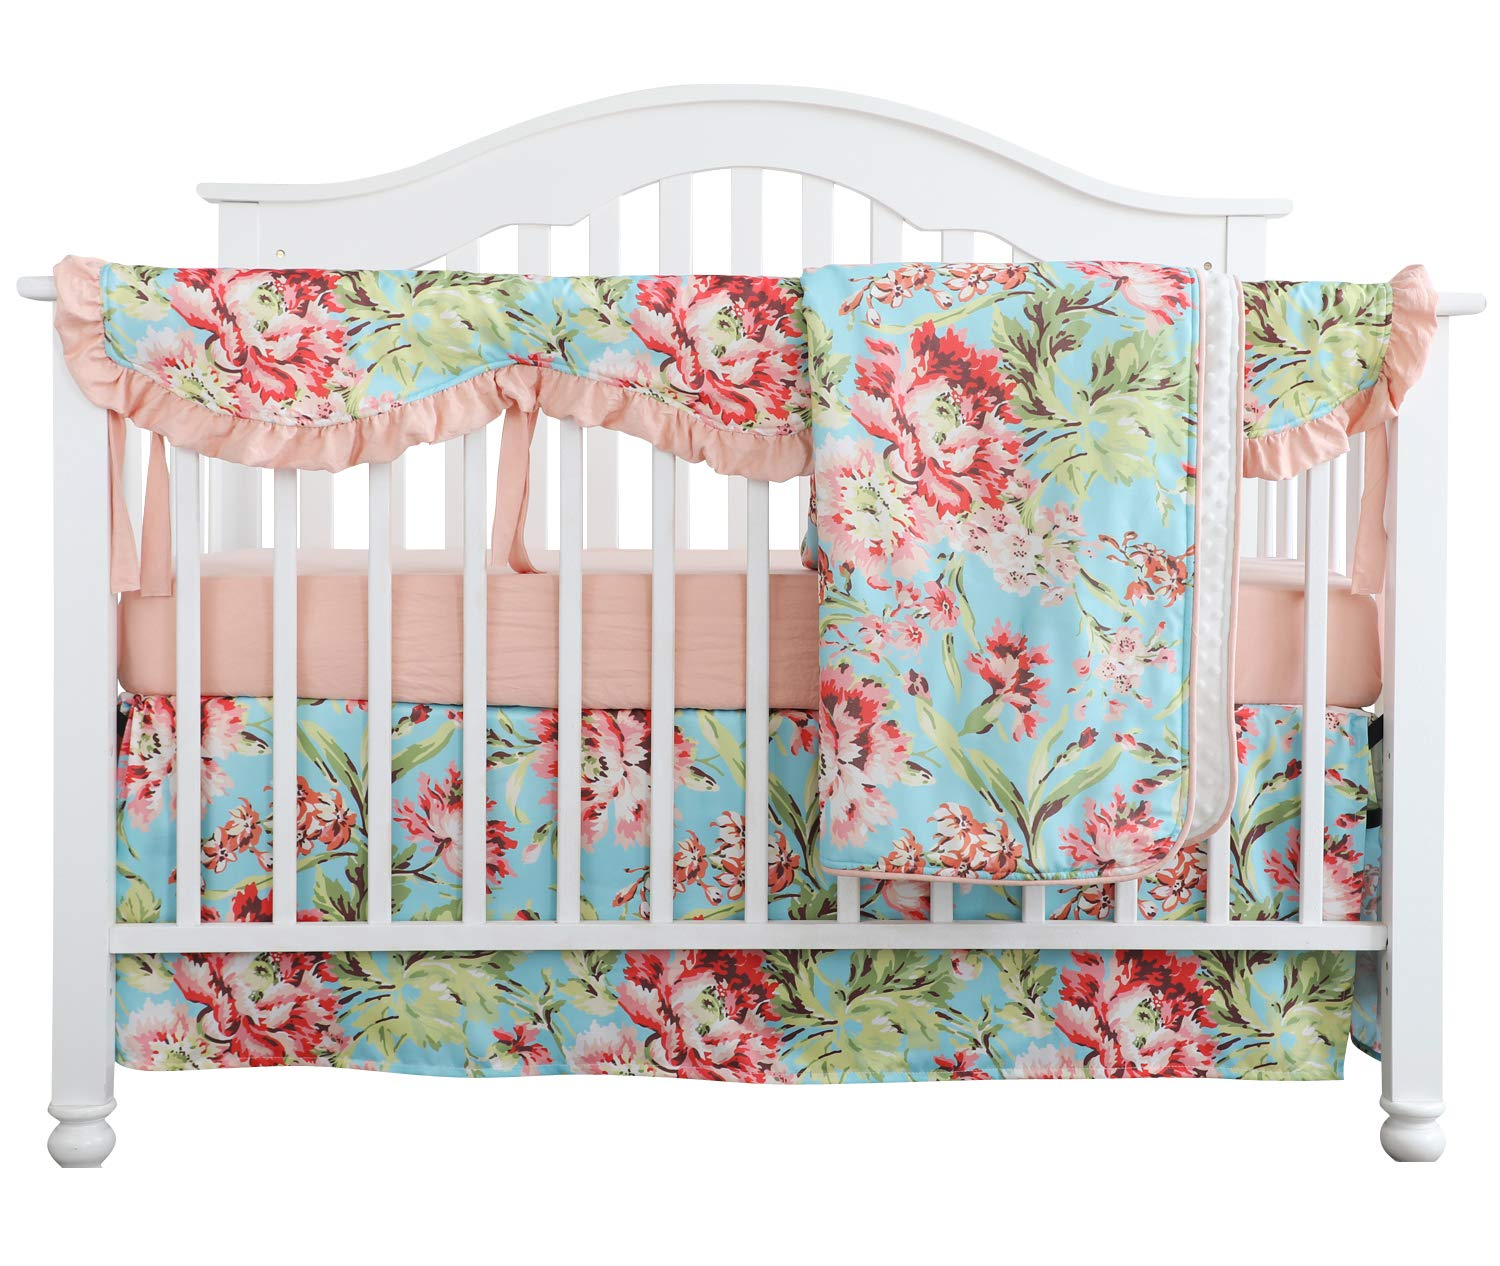 Crib Rail Guard Set Boho Floral Nursery Baby Bedding Ruffled Crib Skirt Crib Rail Cover Set (Ruffle Teal Floral)